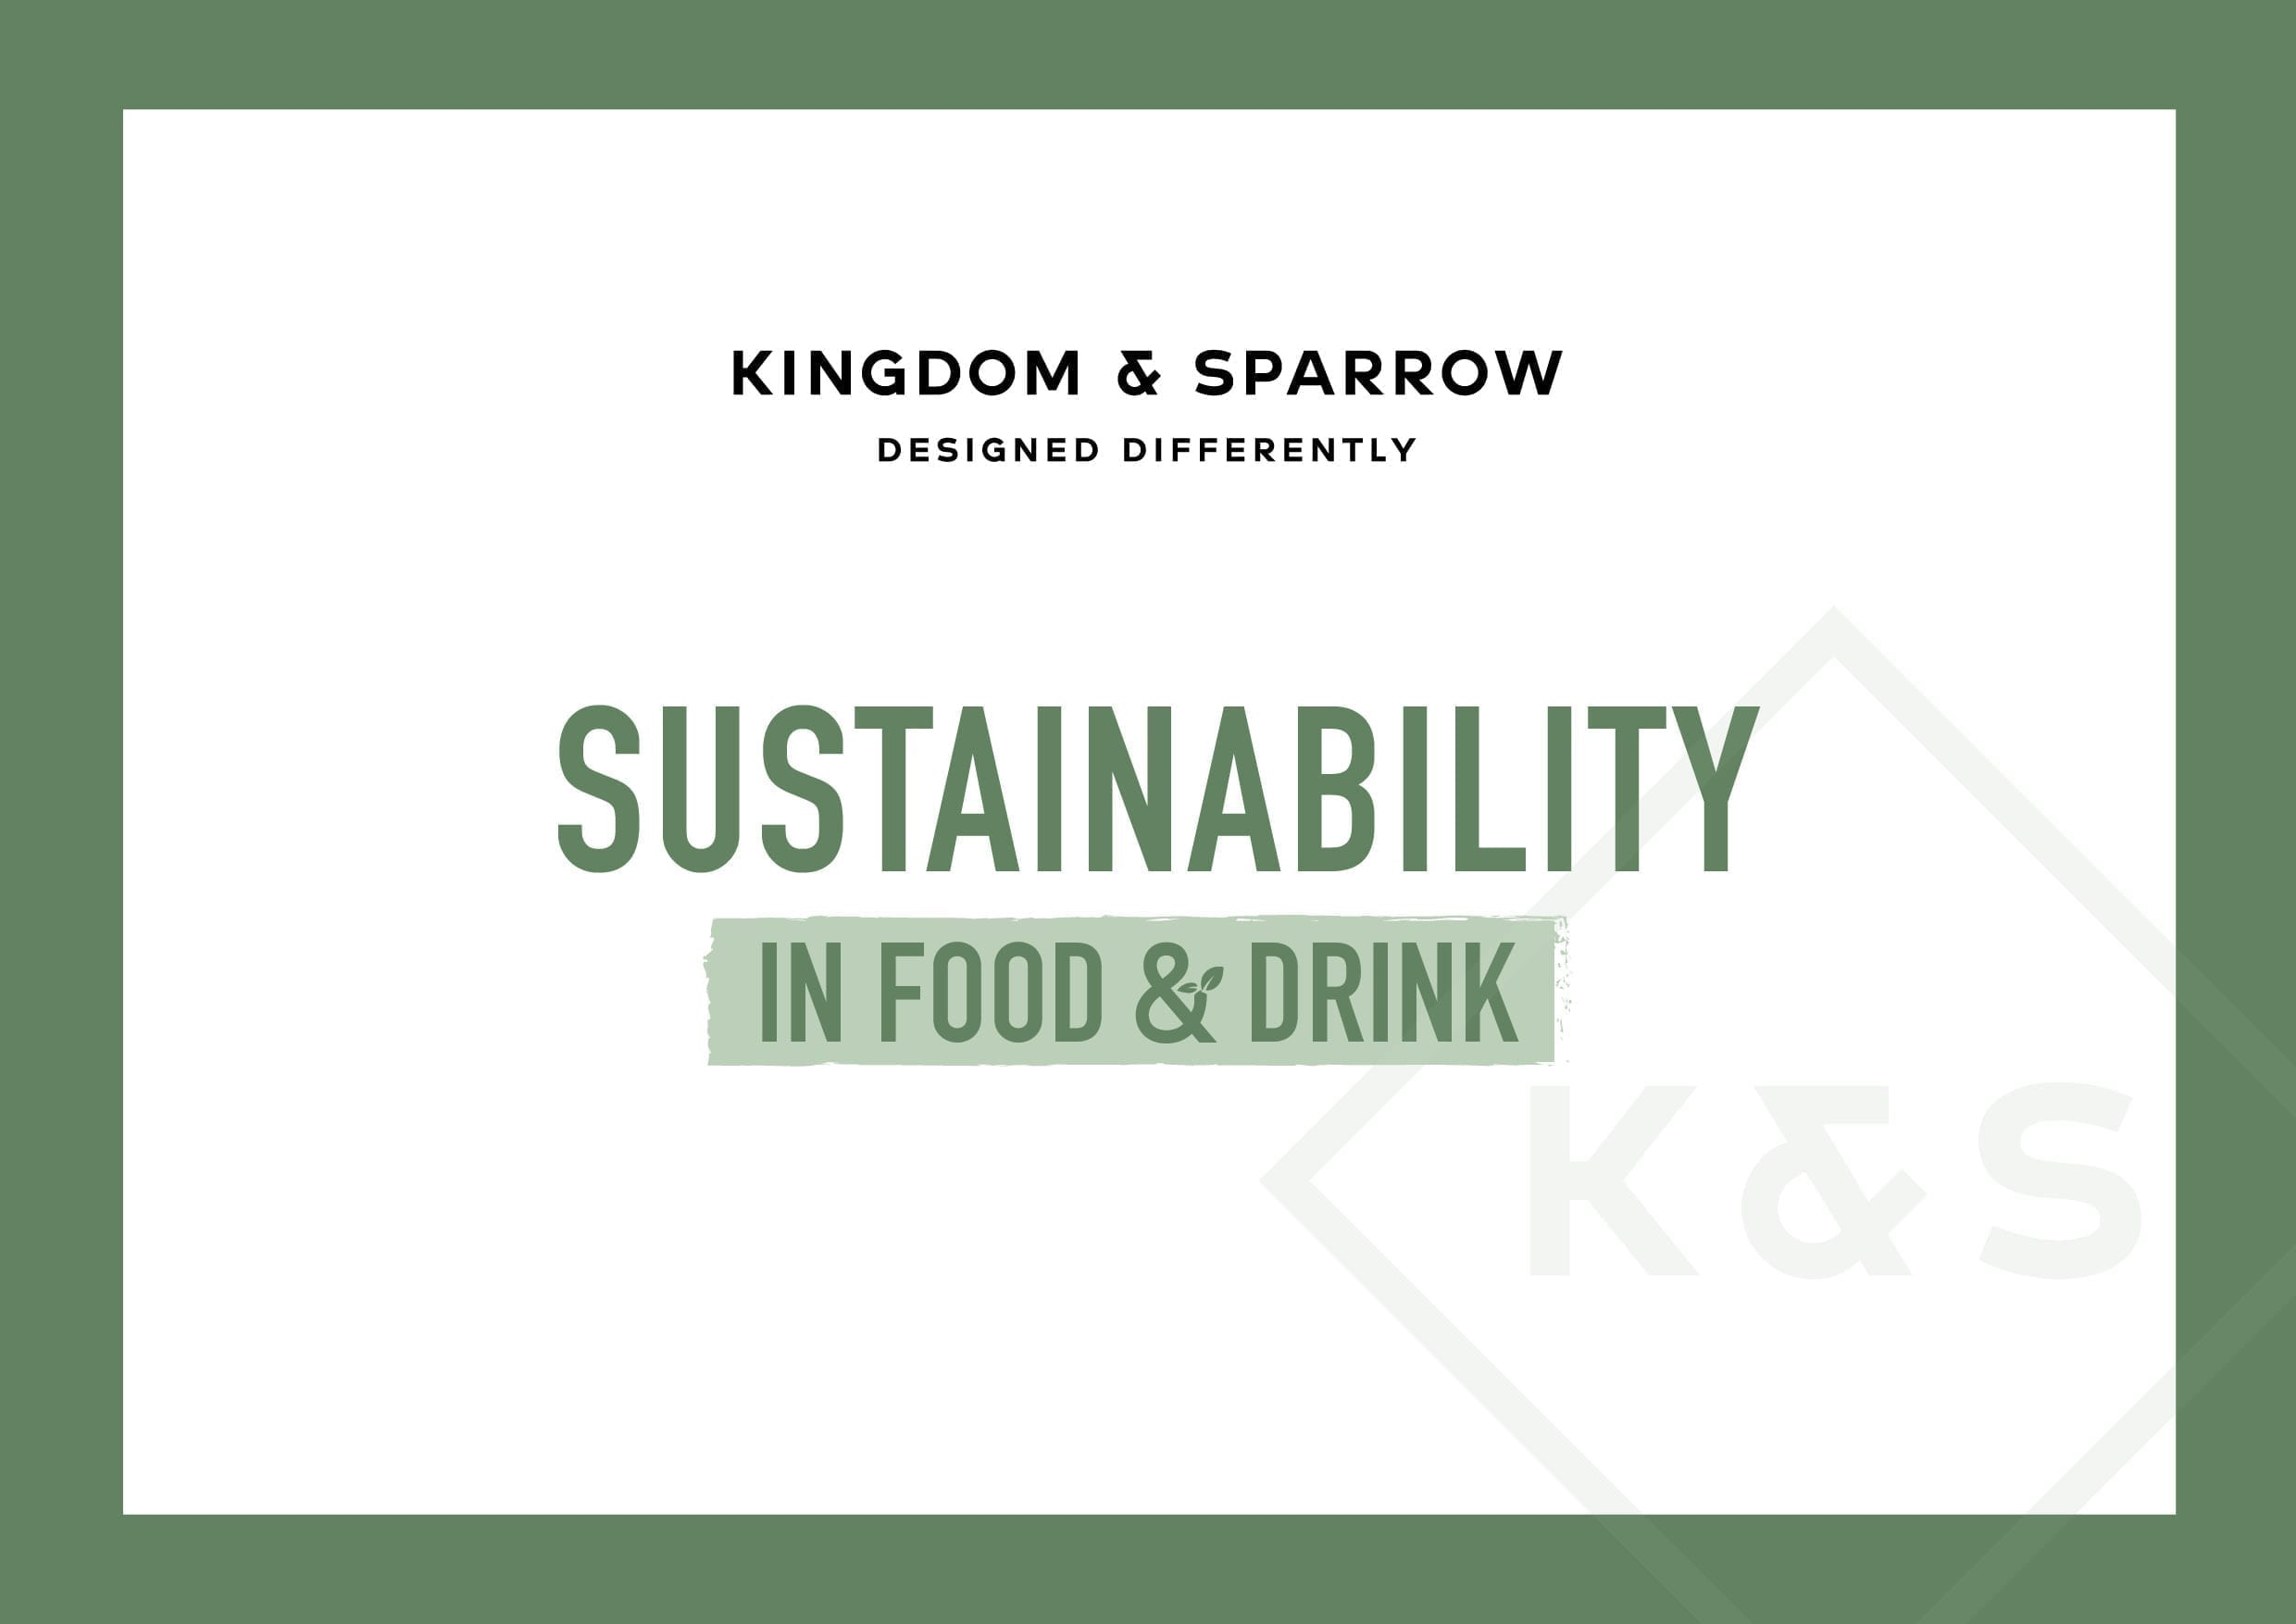 Sustainability in the food & drink industry